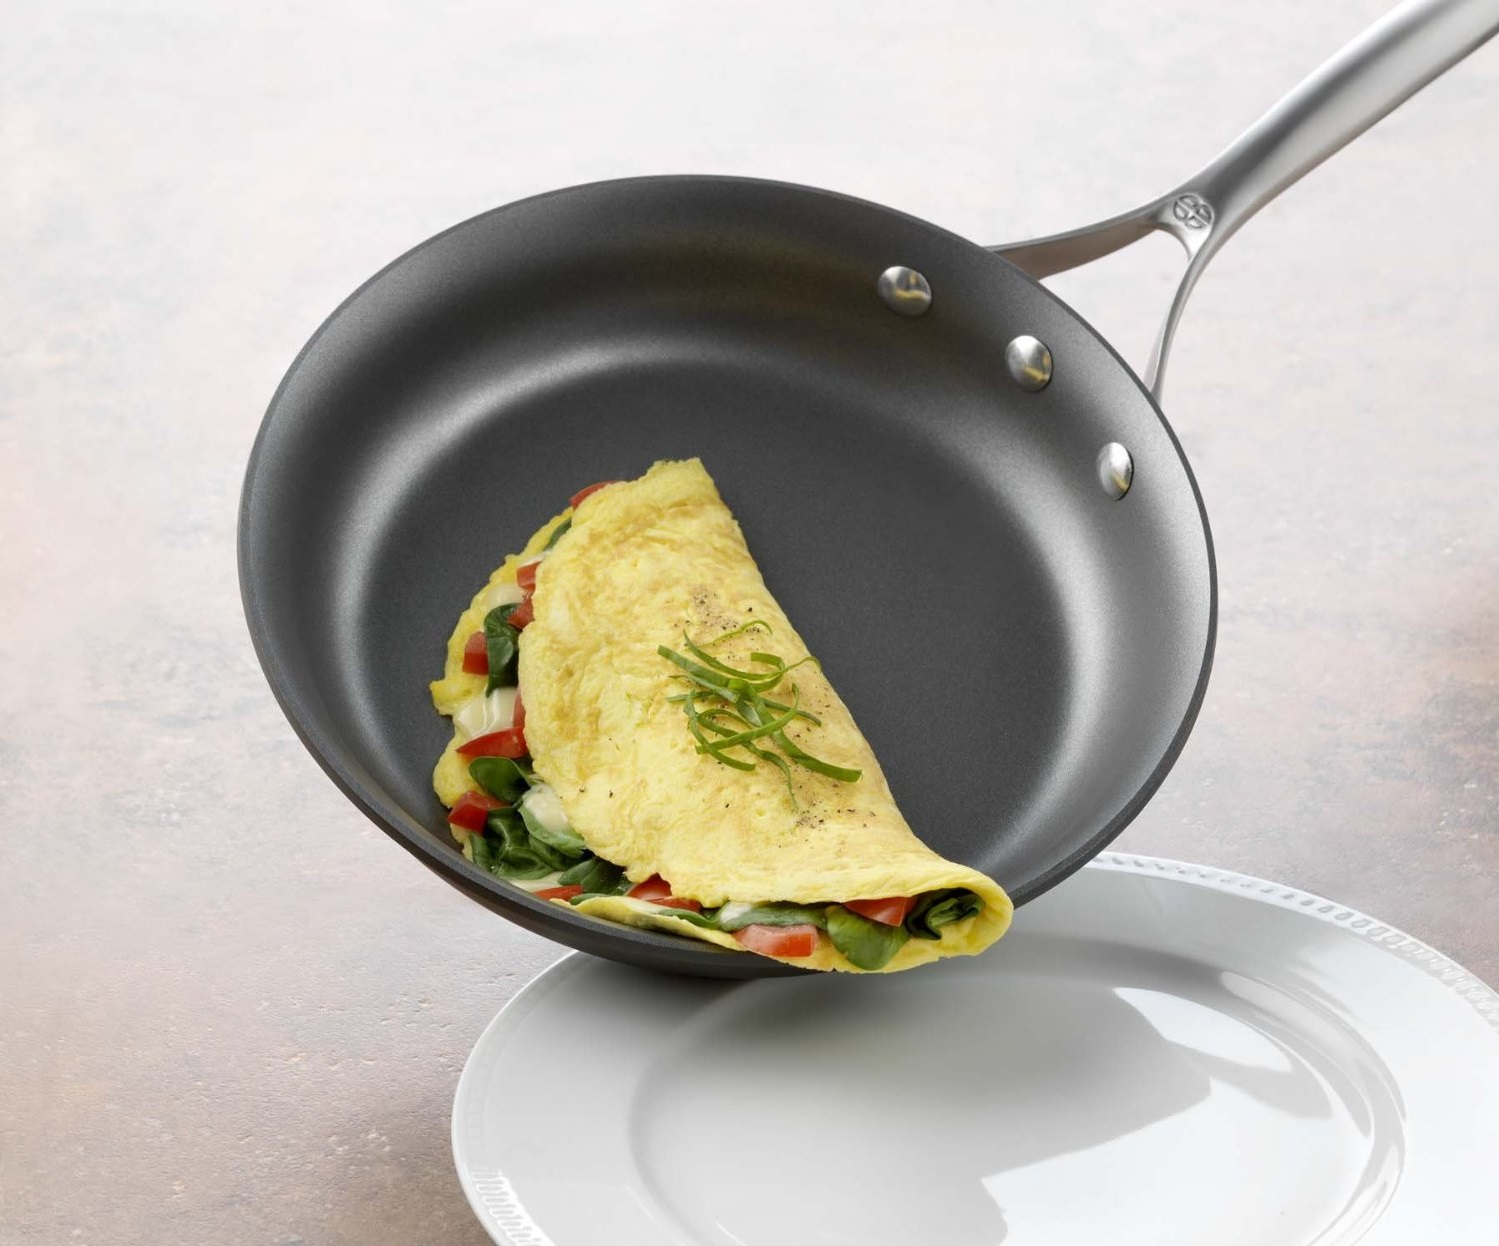 Calphalon Unison Nonstick Slide Surface Omelette Pan